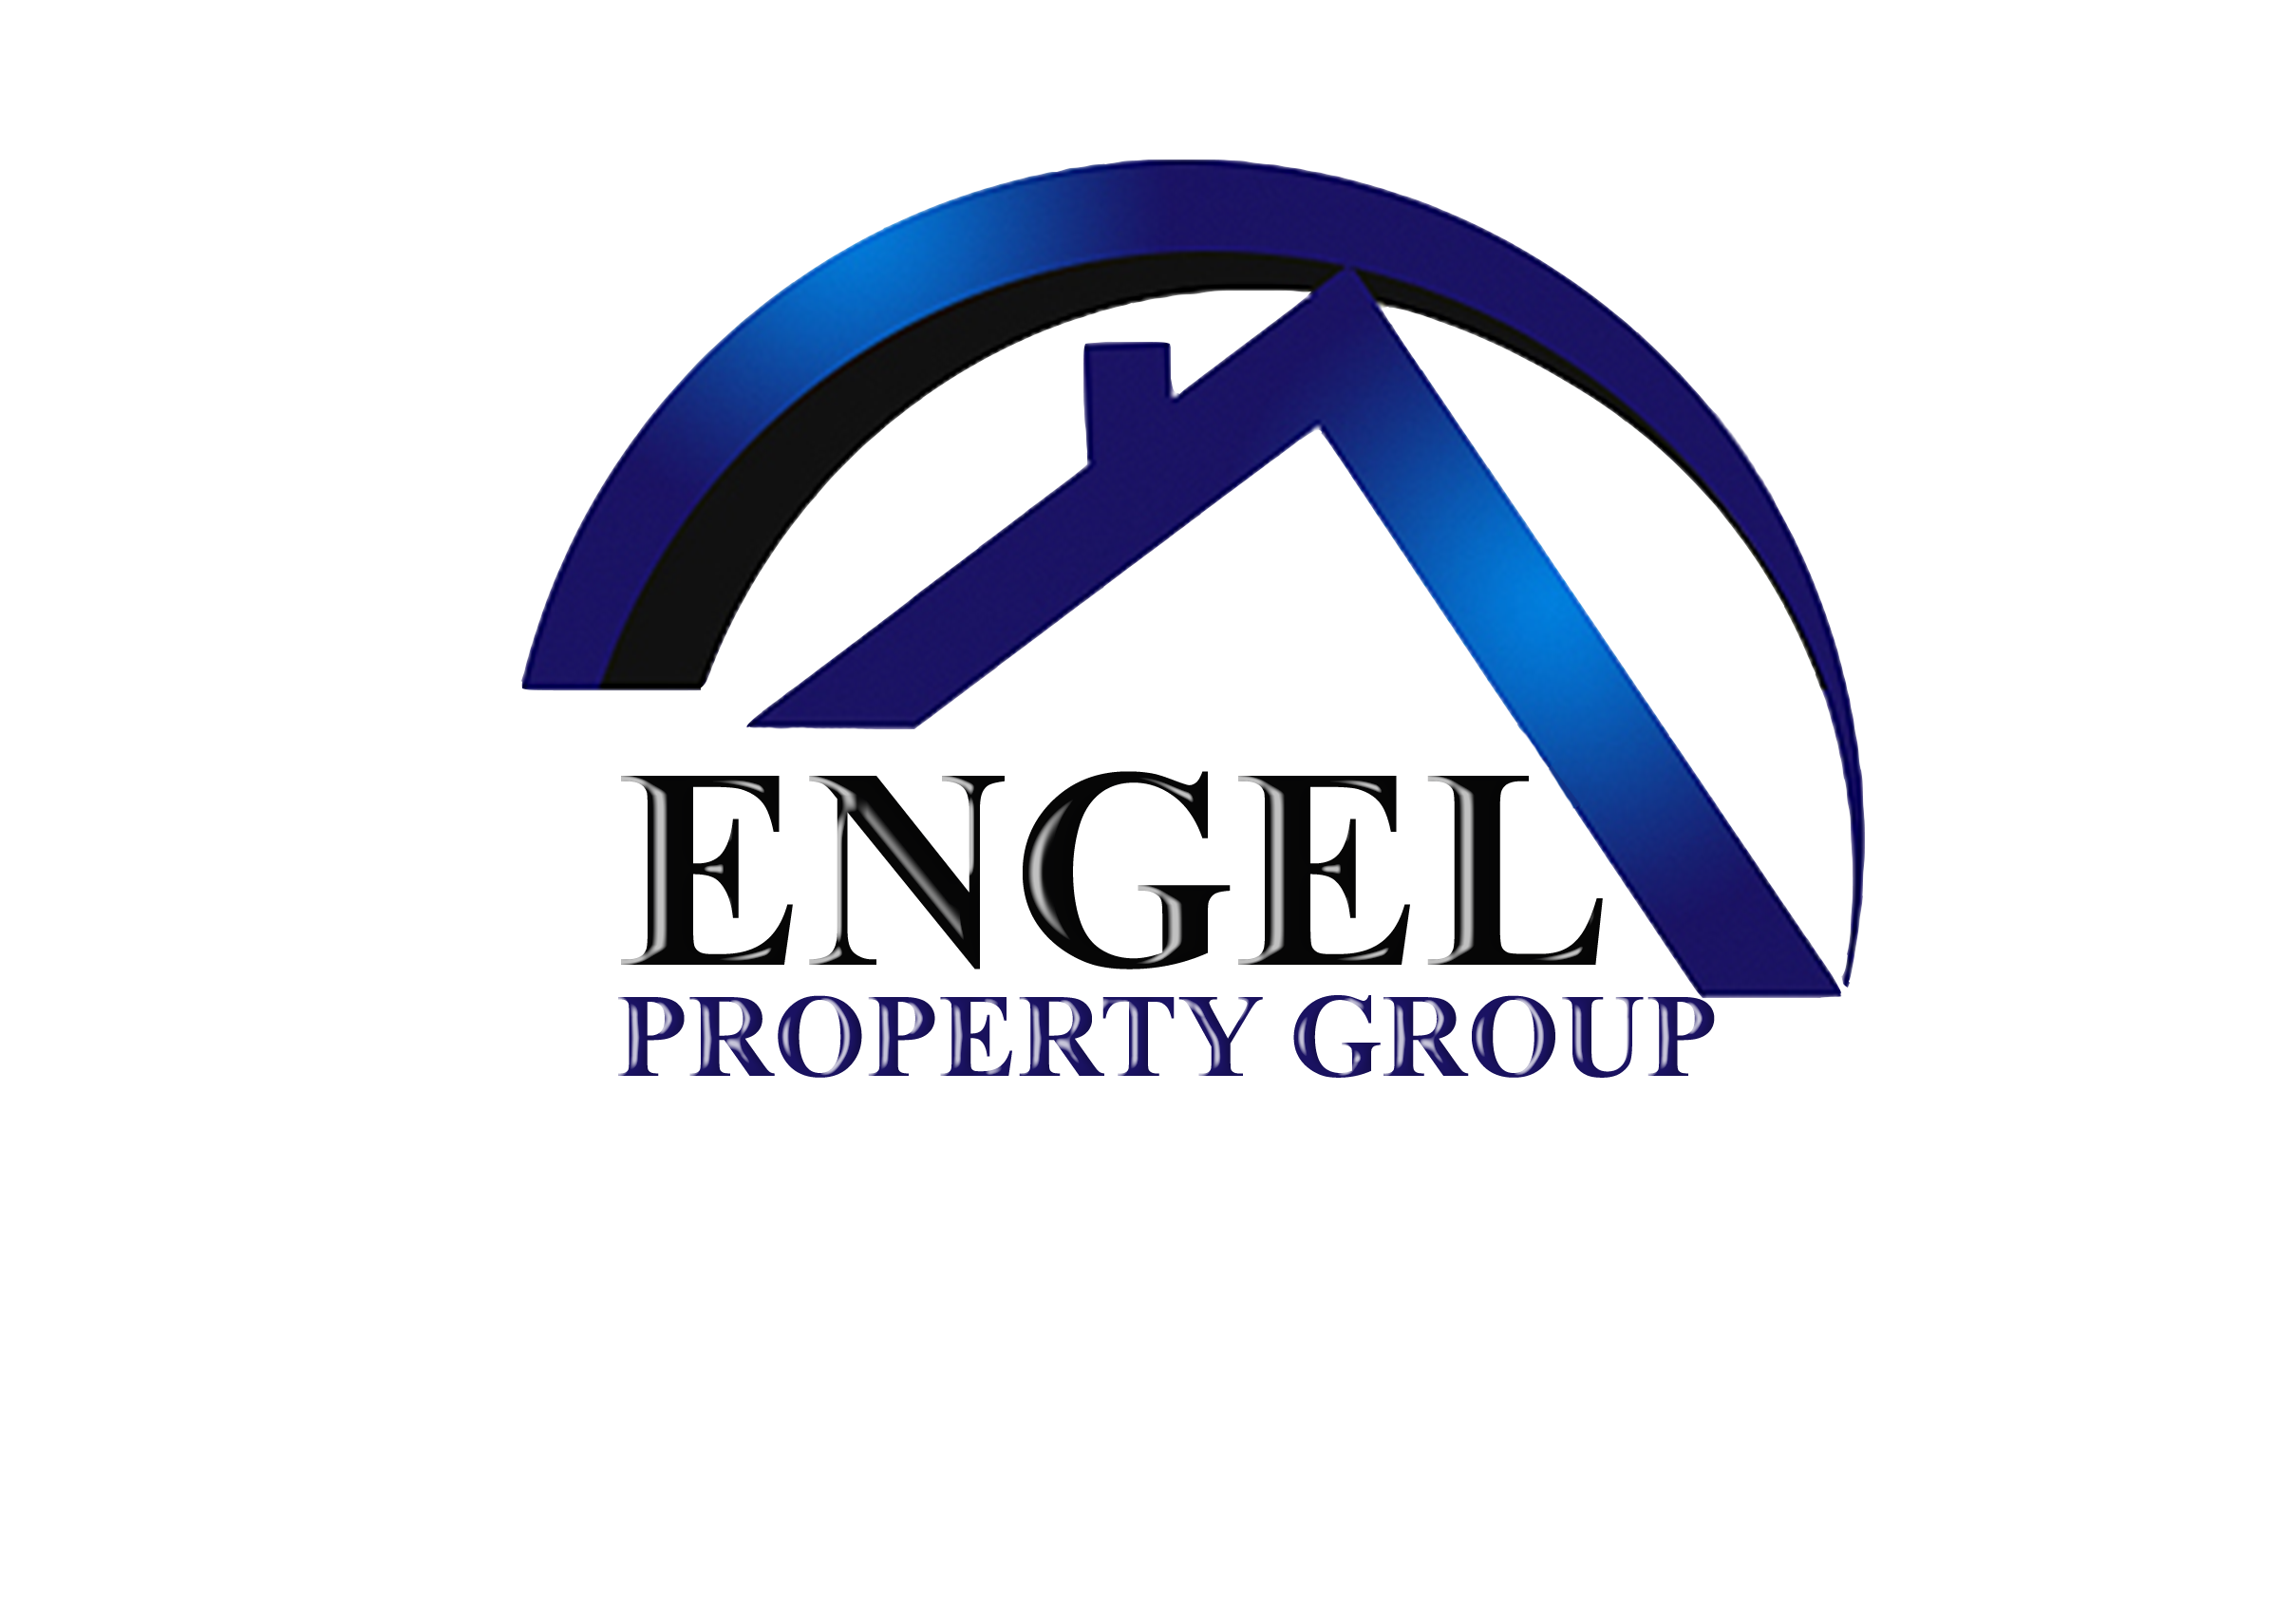 Engel Property Group